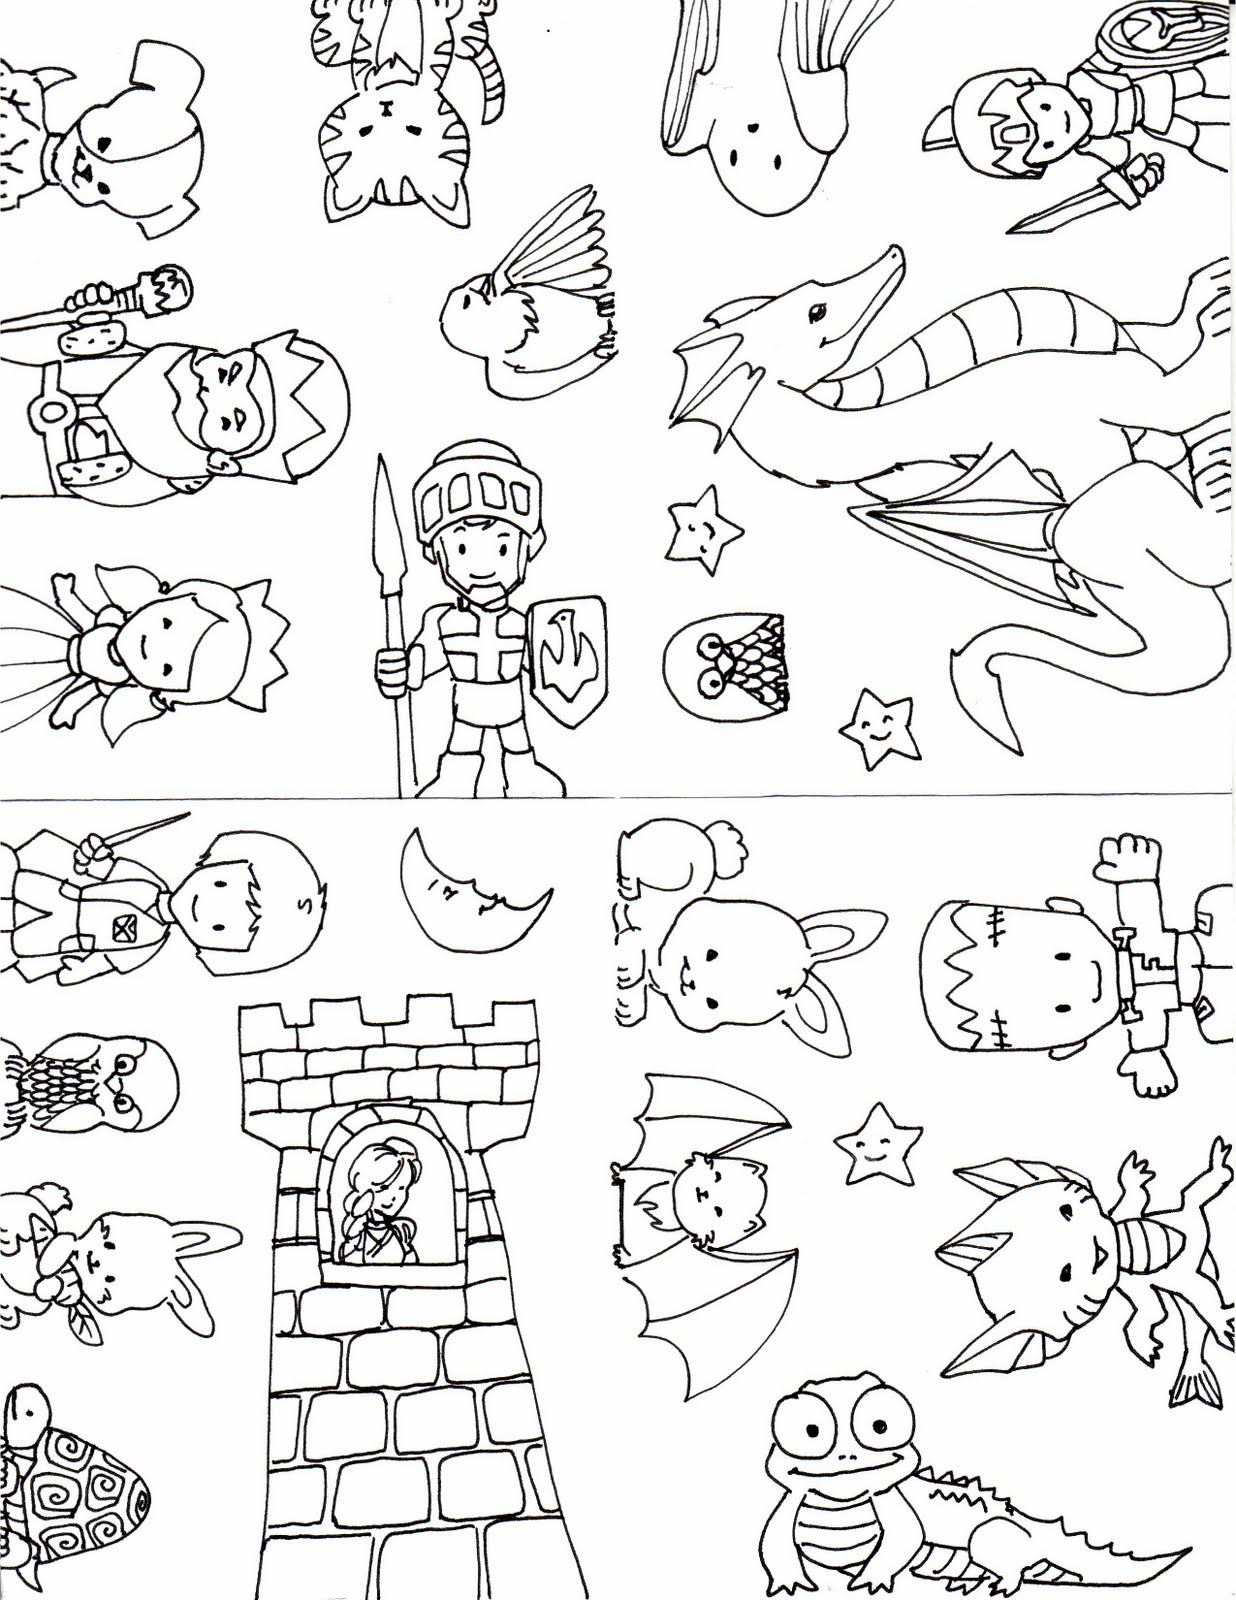 Kid sketches pop up castle templates and samples pop up castle templates and samples maxwellsz